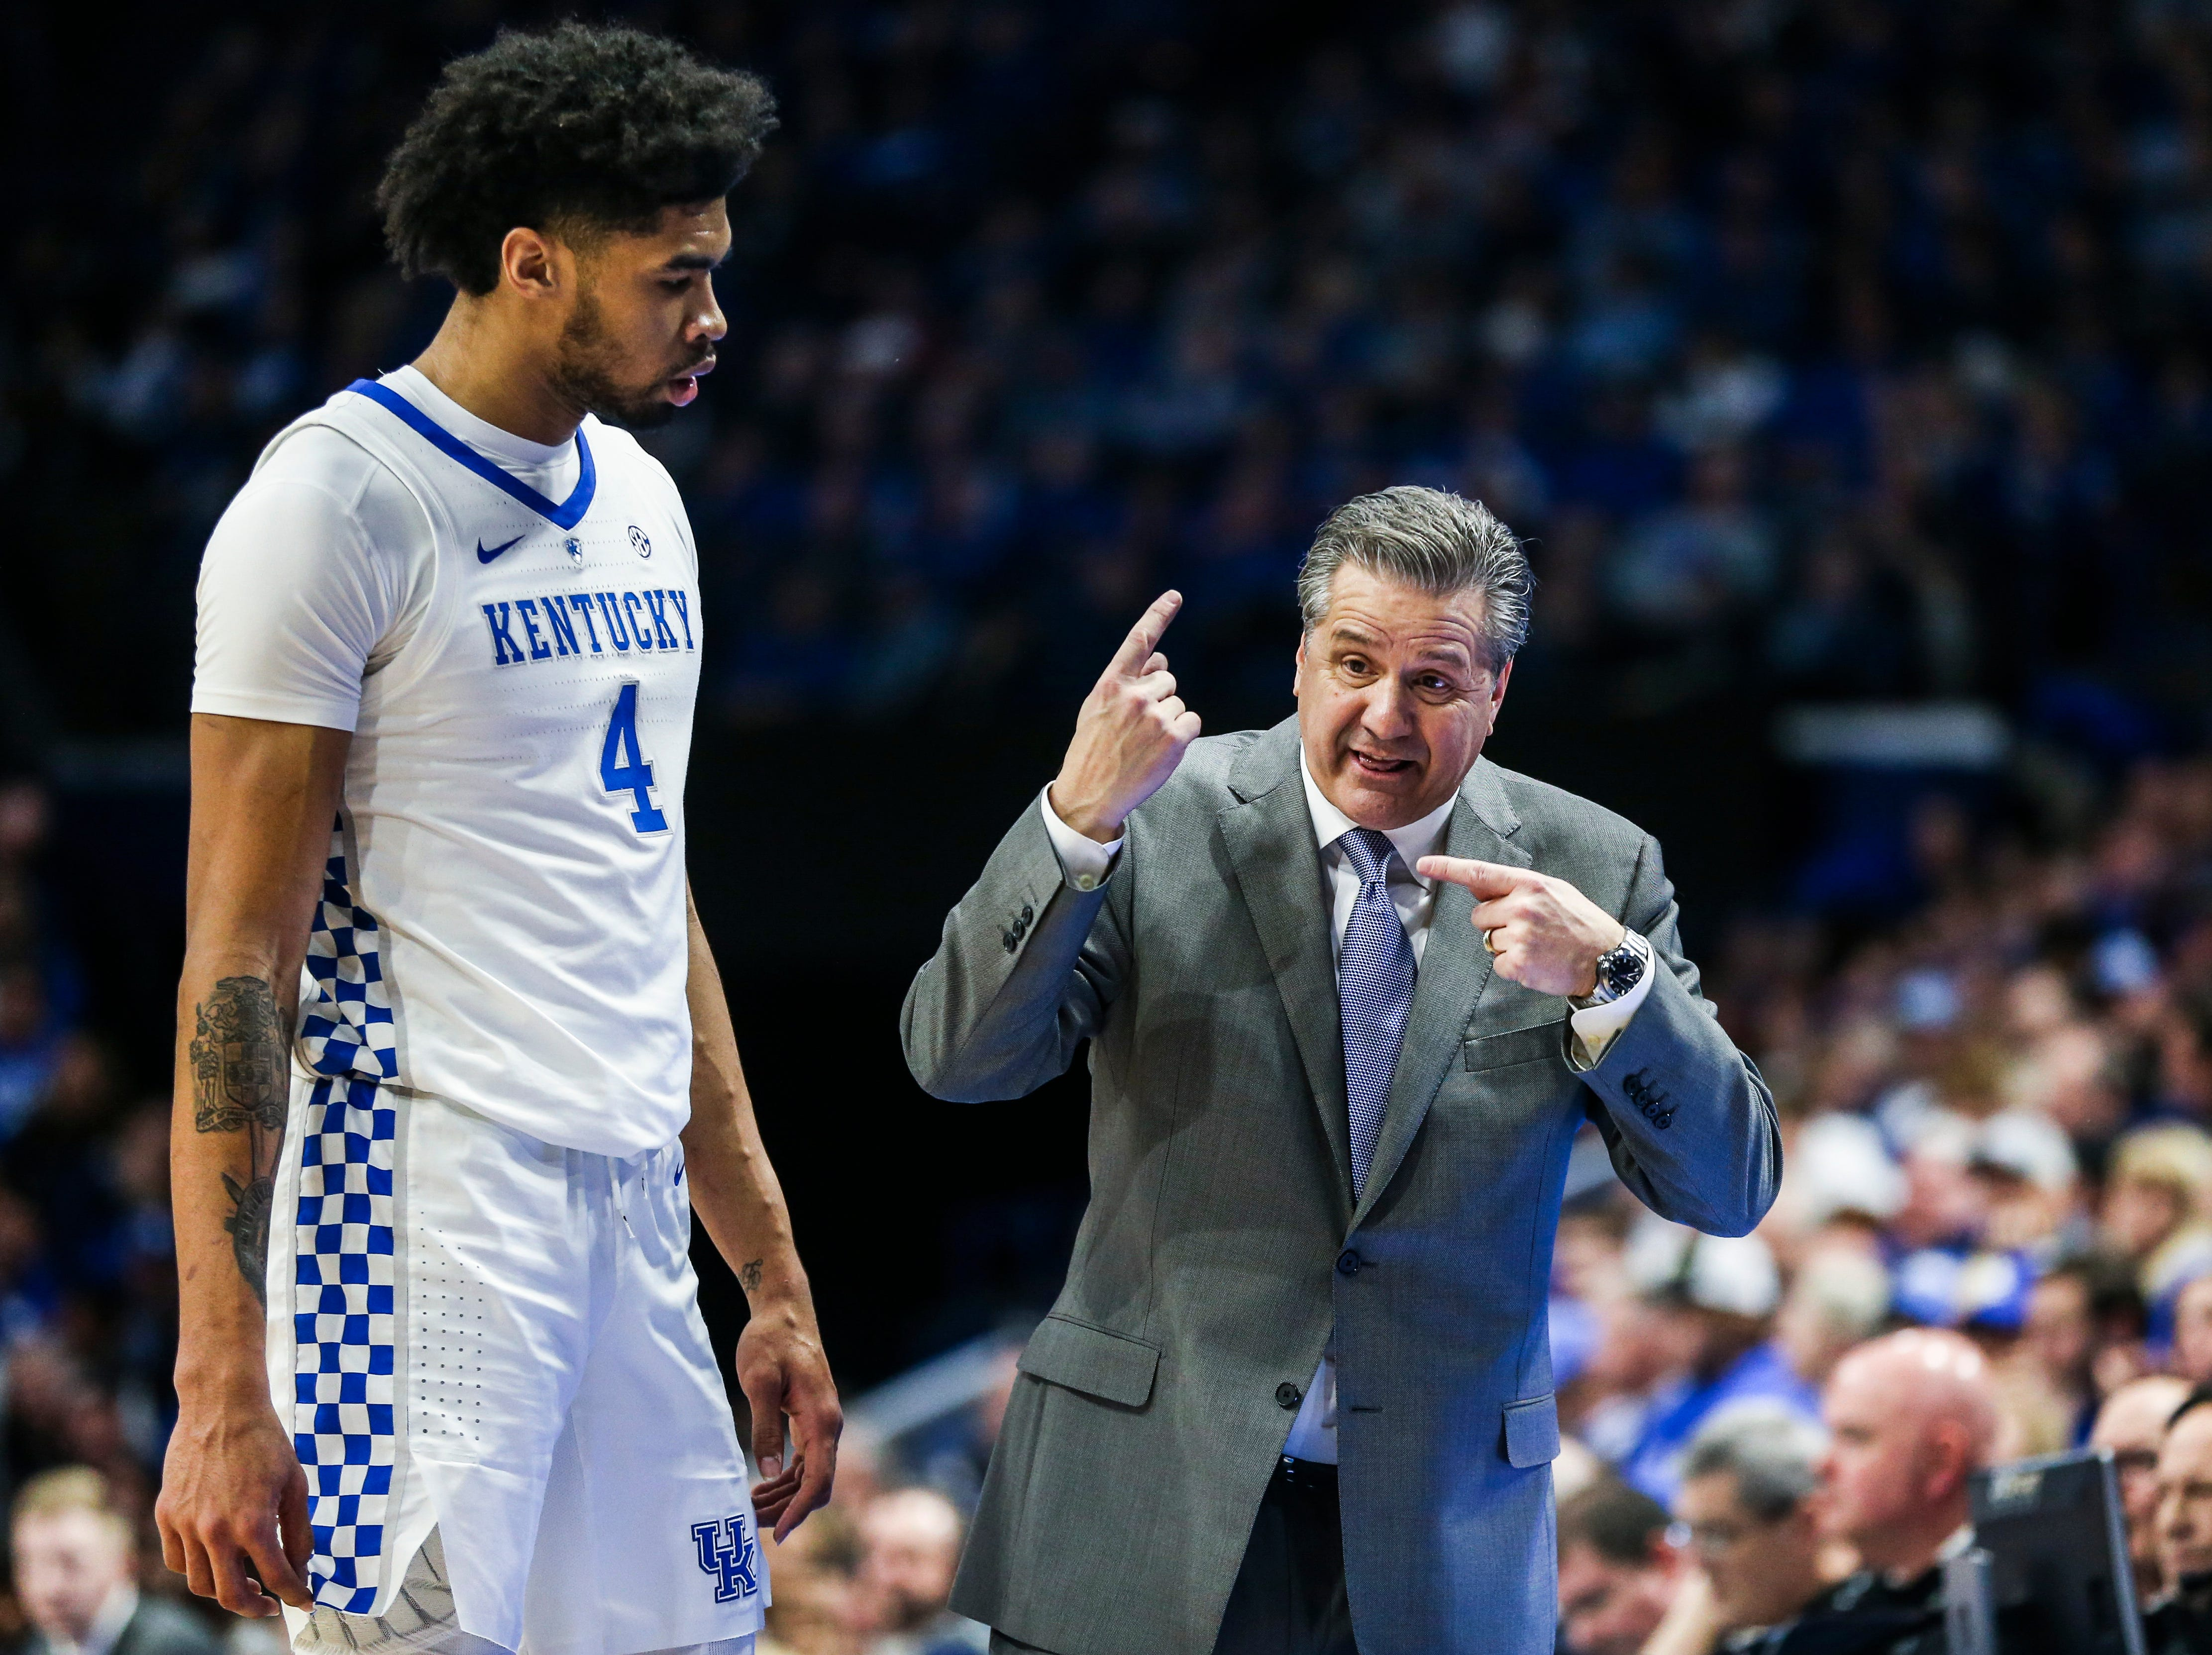 Kentucky's John Calipari tries to get a point across to Nick Richards during the game against Mississippi State Tuesday night at Rupp Arena in Lexington. Richards finished with eight points and six rebounds as the Wildcats won 76-55.